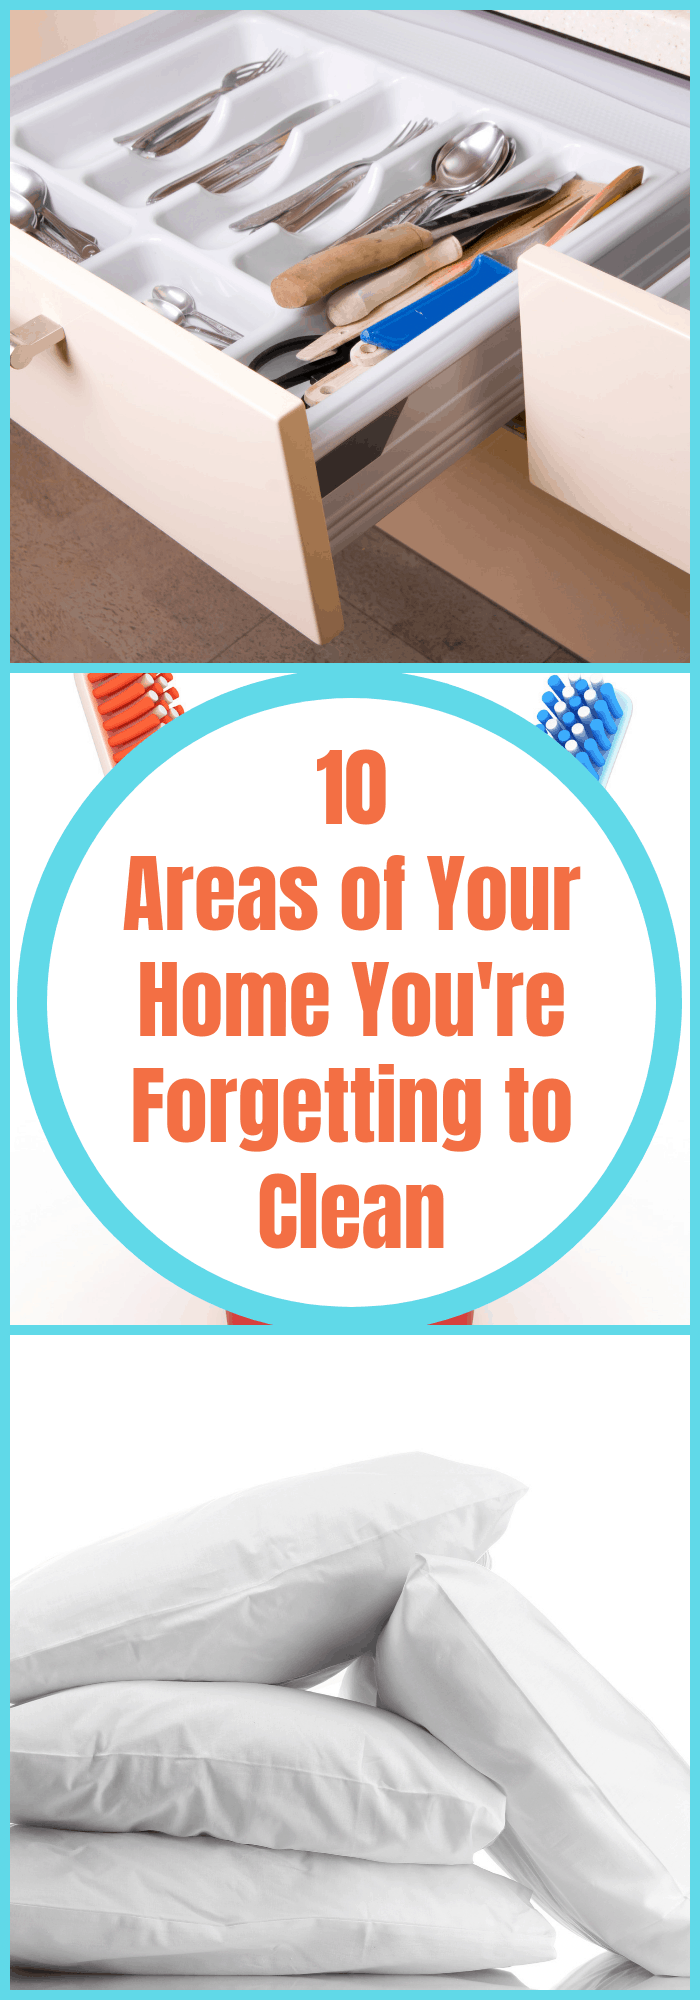 10 Areas of Your Home Youre Forgetting to Clean